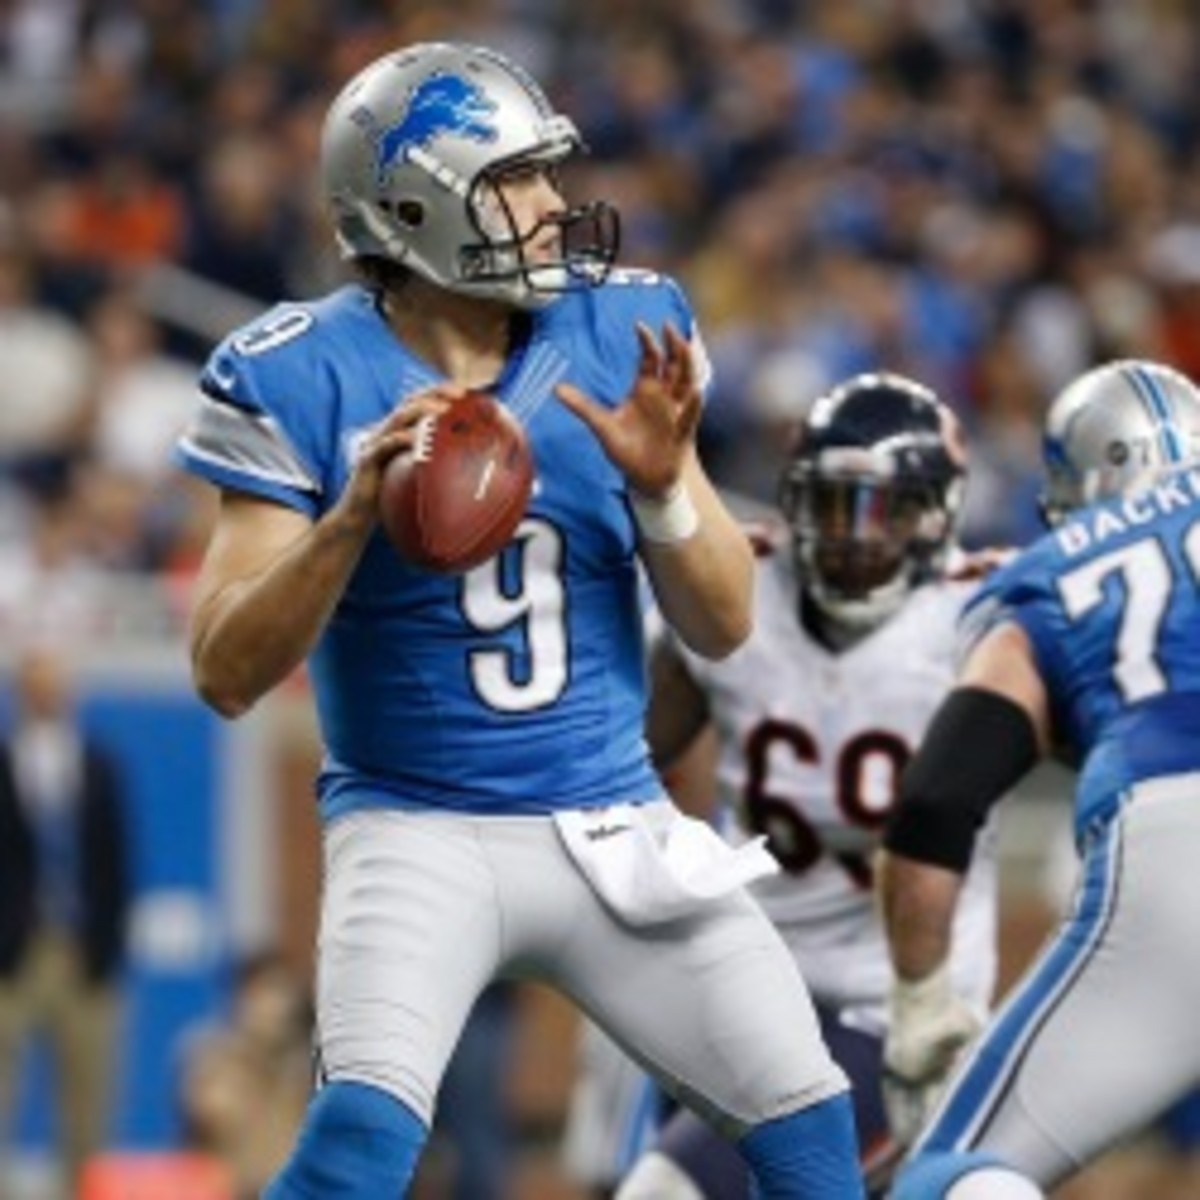 The Lions and quarterback Matthew Stafford have reportedly started contract extension talks. (Gregory Shamus/Getty Images)